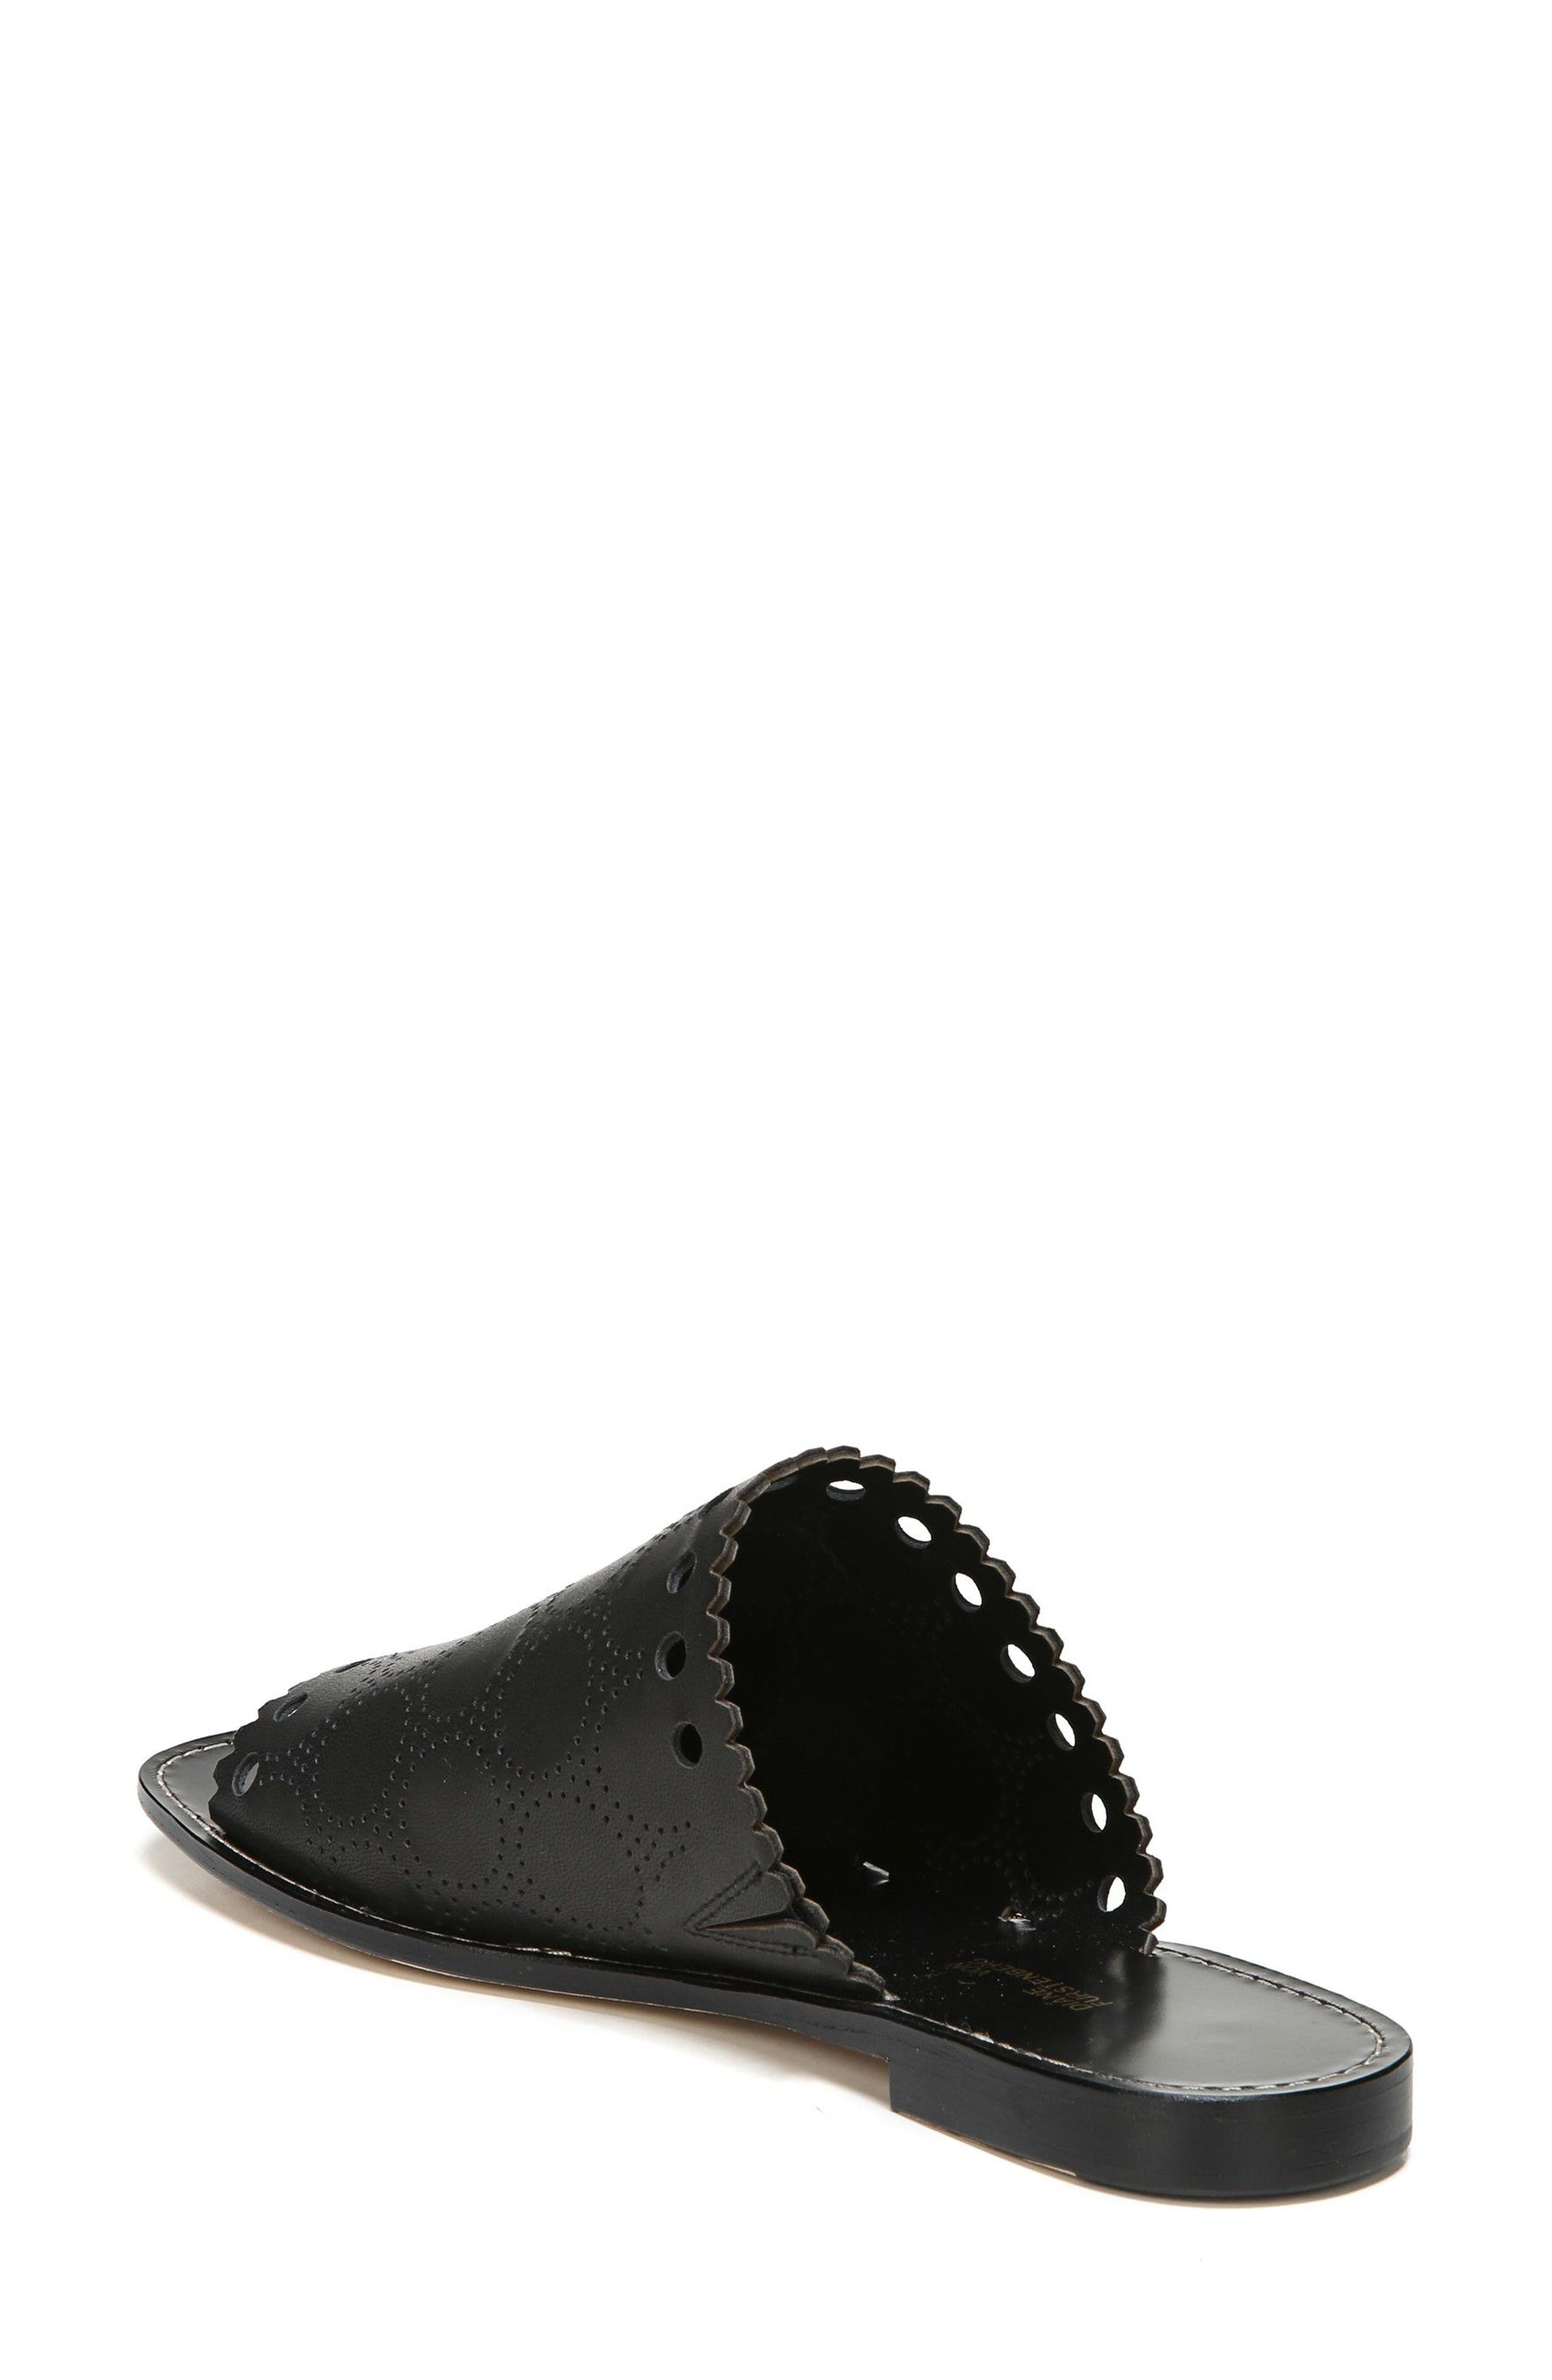 Estevan Slide Sandal,                             Alternate thumbnail 2, color,                             Black